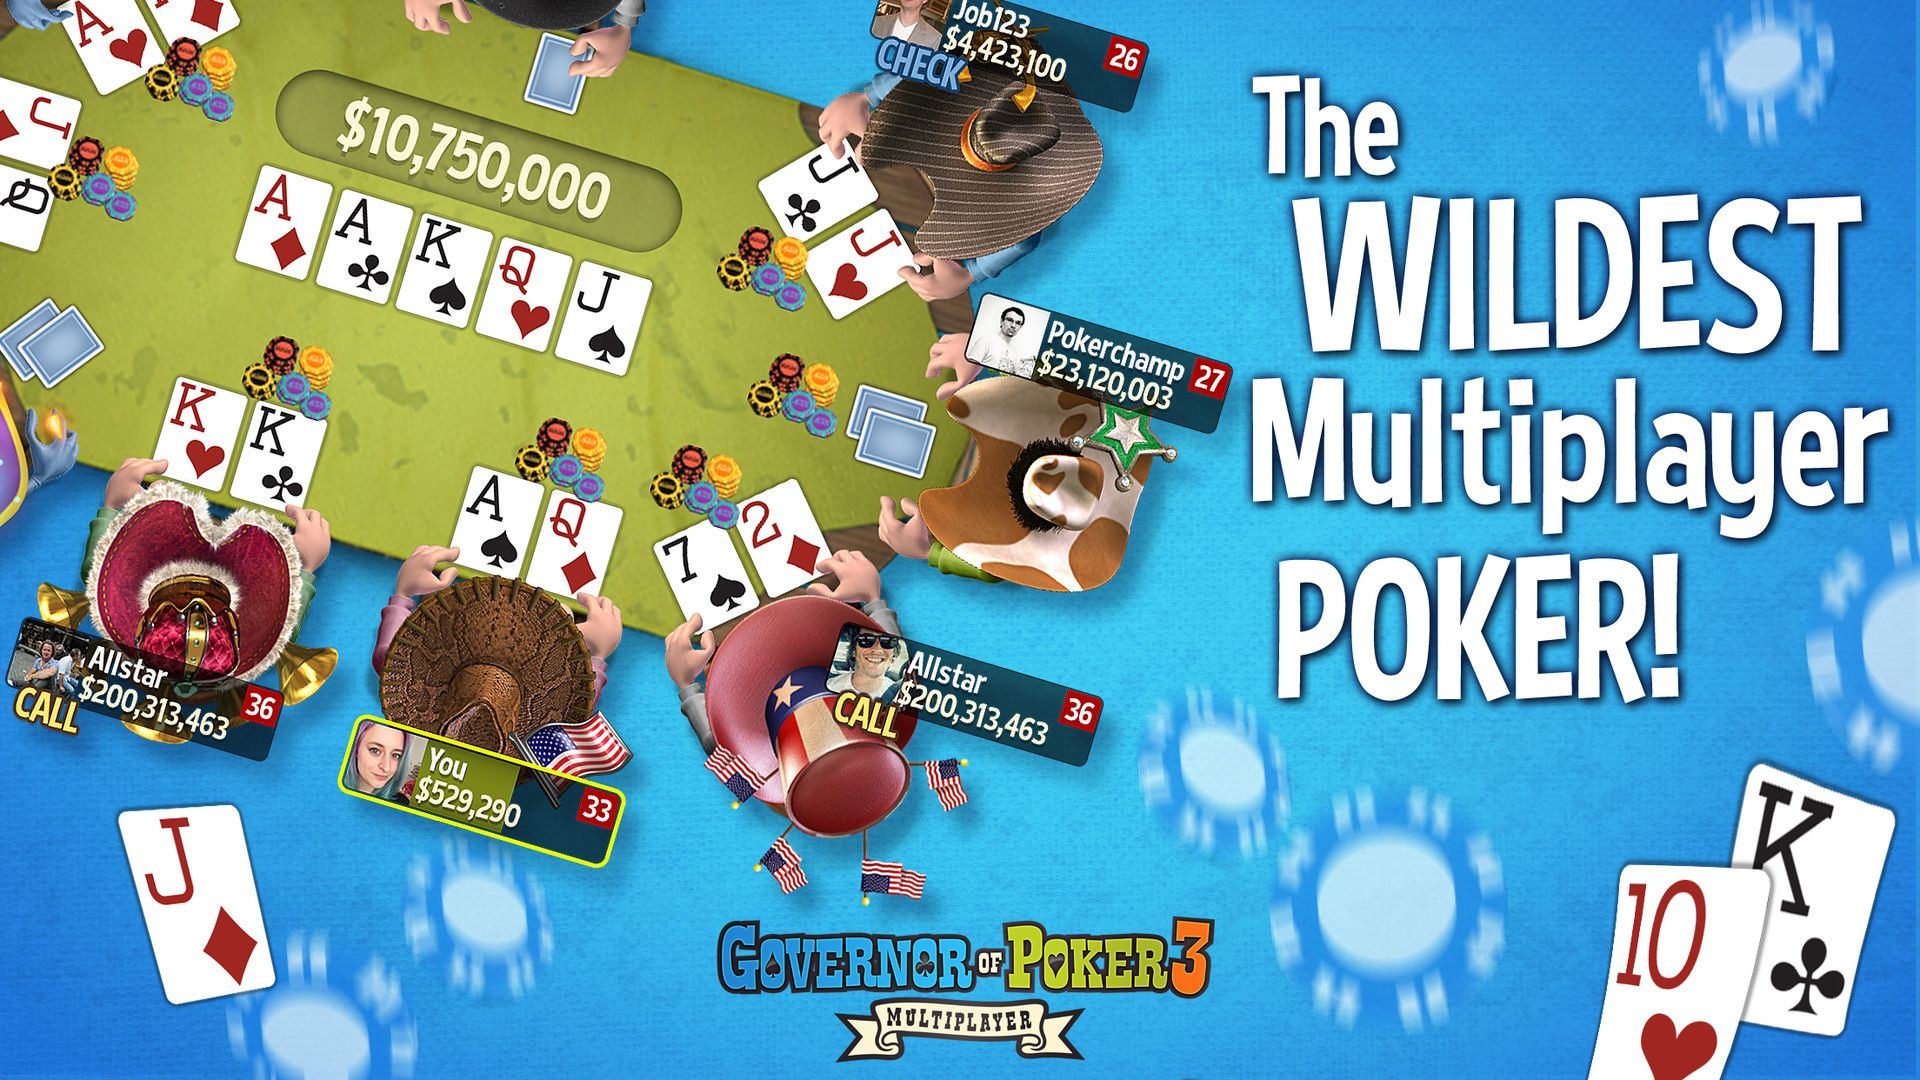 Governor Of Poker 3 Coupon Code